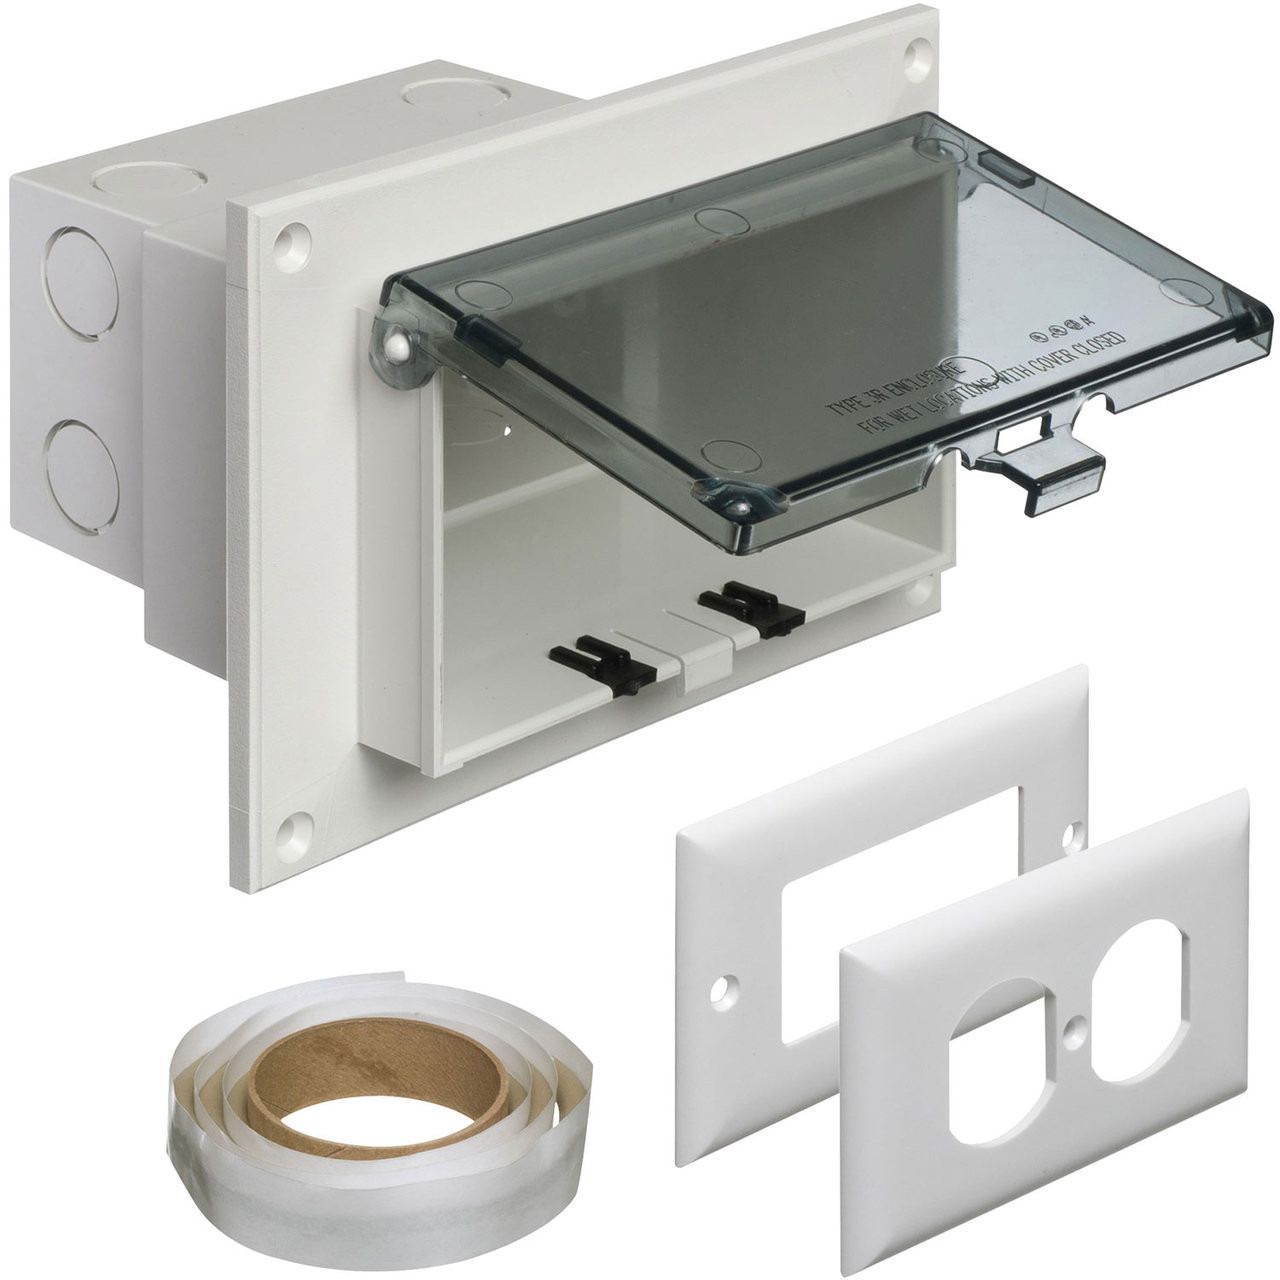 Arlington Dbhr1c Horizontal Recessed In Box For Retrofit Construction With Clear Cover